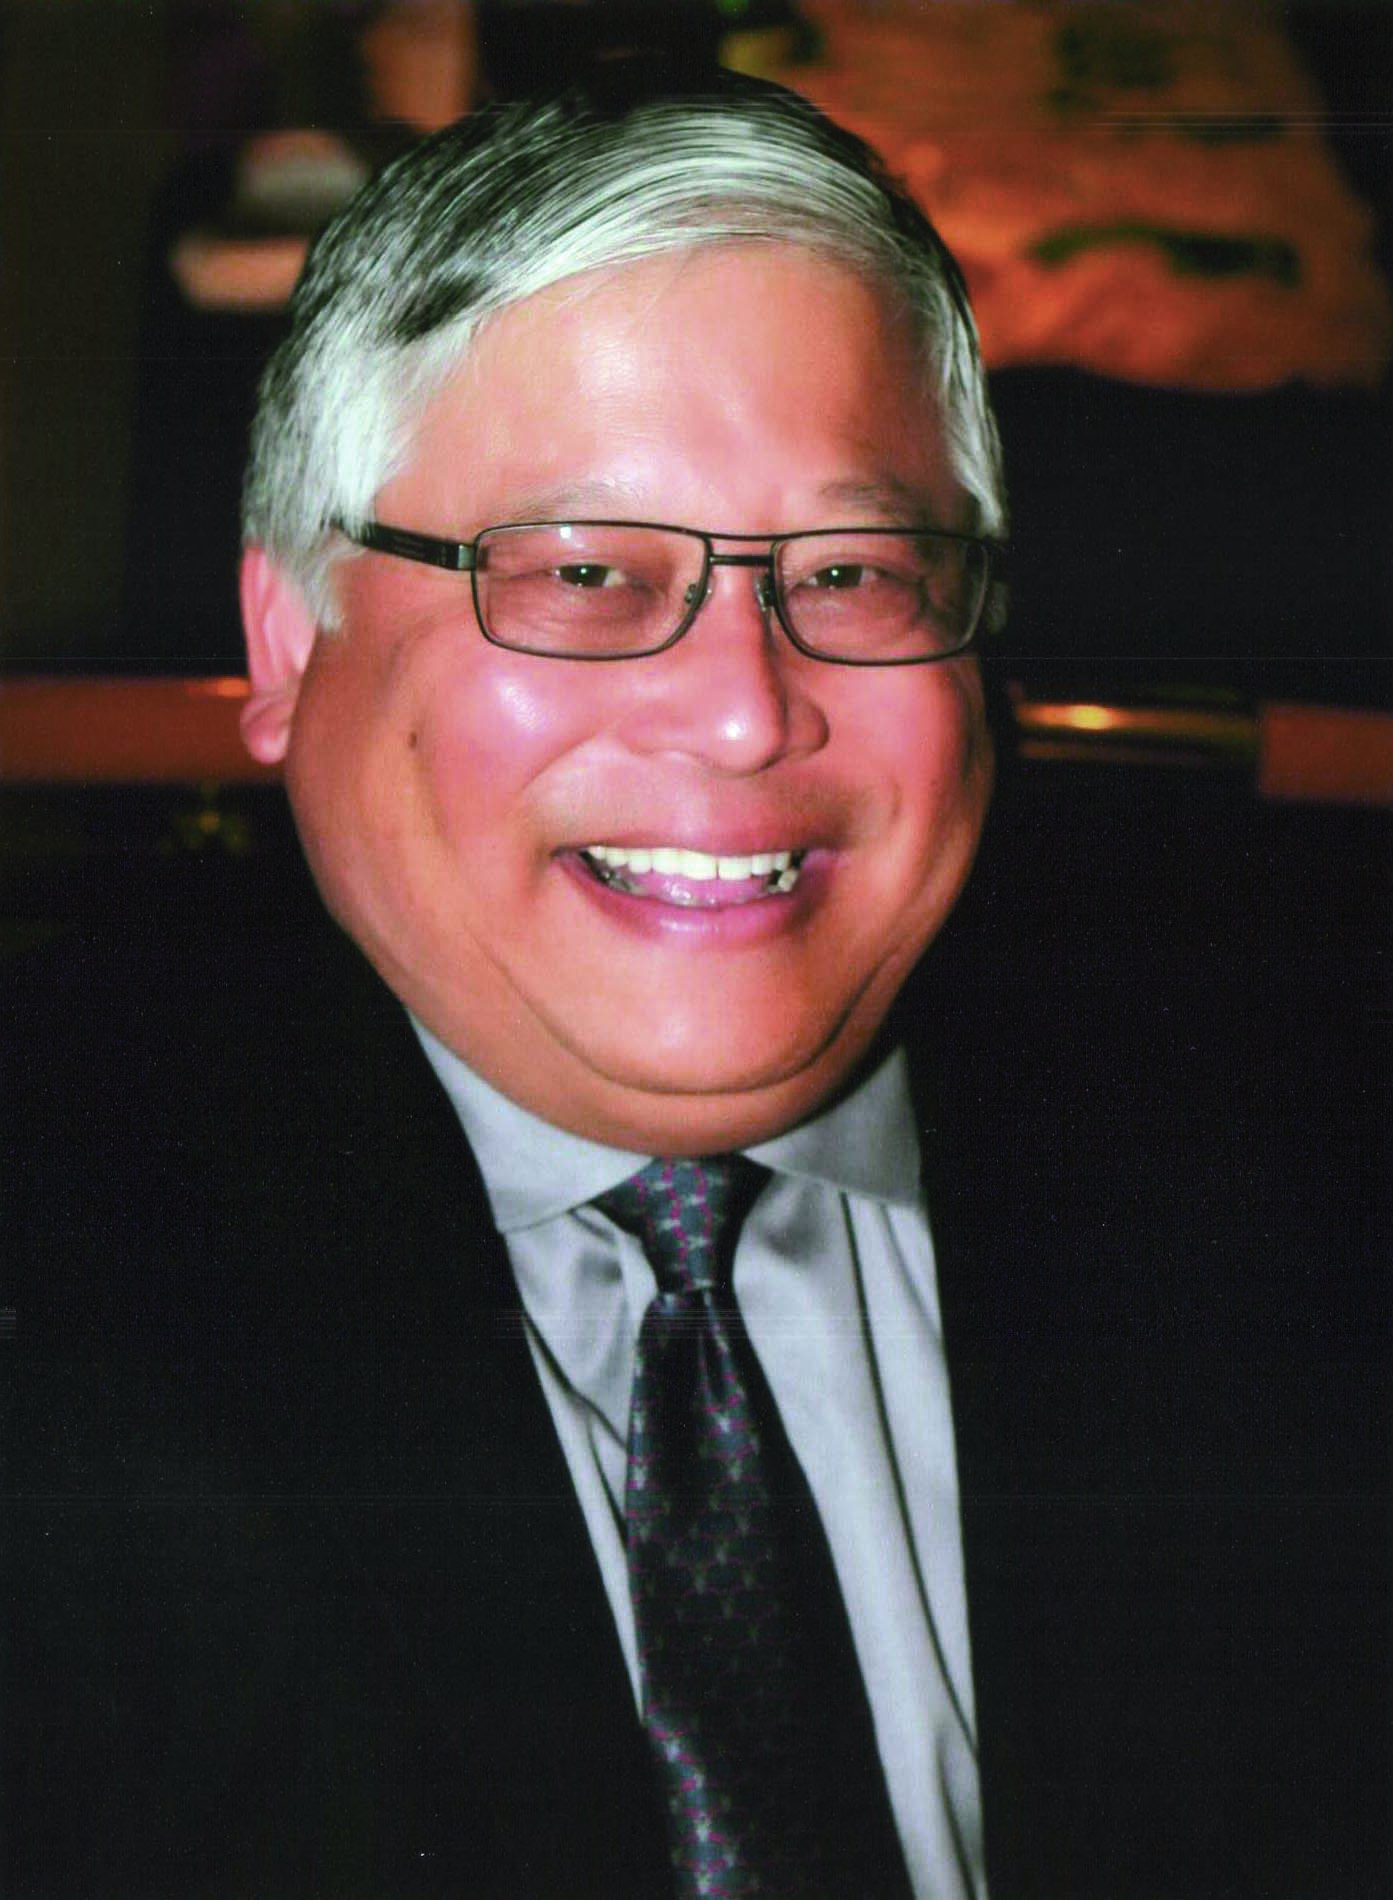 Ron Dyo has made significant contributions to the community, especially through the Pasadena Japanese Cultural Institute. Mr. Dyo co-founded the Nikkei Federation's Rising Stars Youth Leadership Program, a program for high school students aimed at building future leaders for our community. The program has just completed its 12 th year.